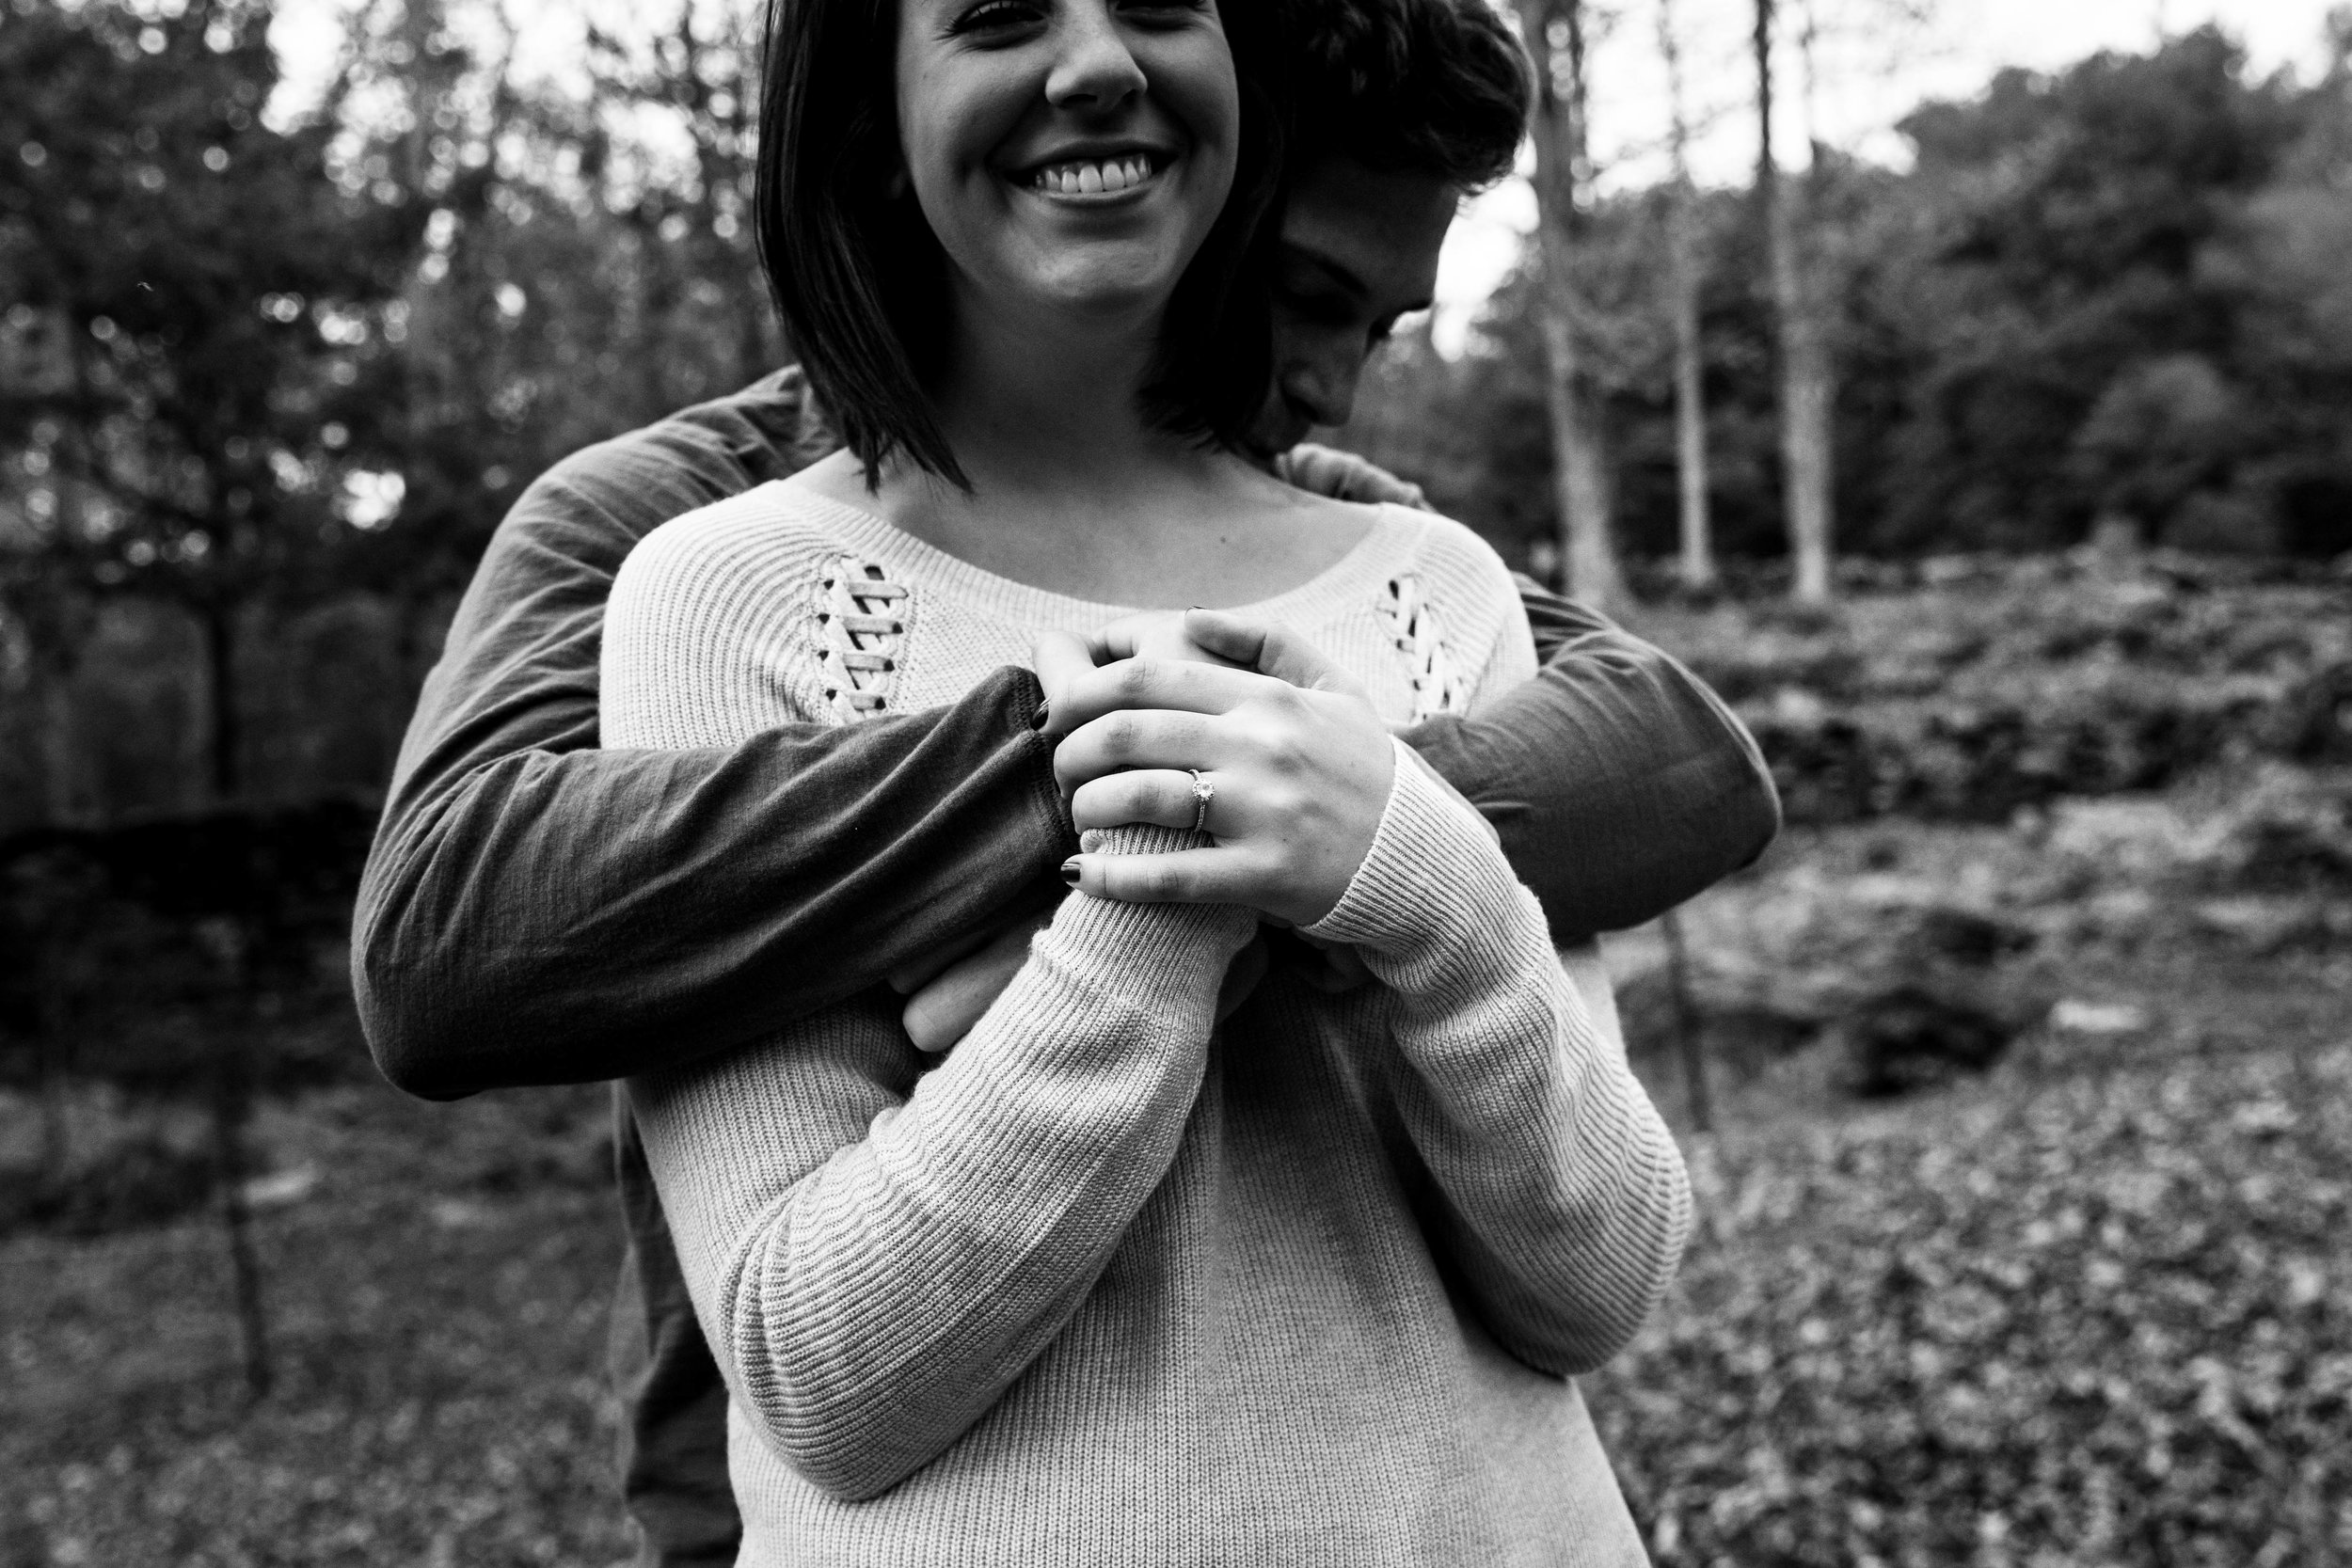 man hugs fiancé from behind in black and white